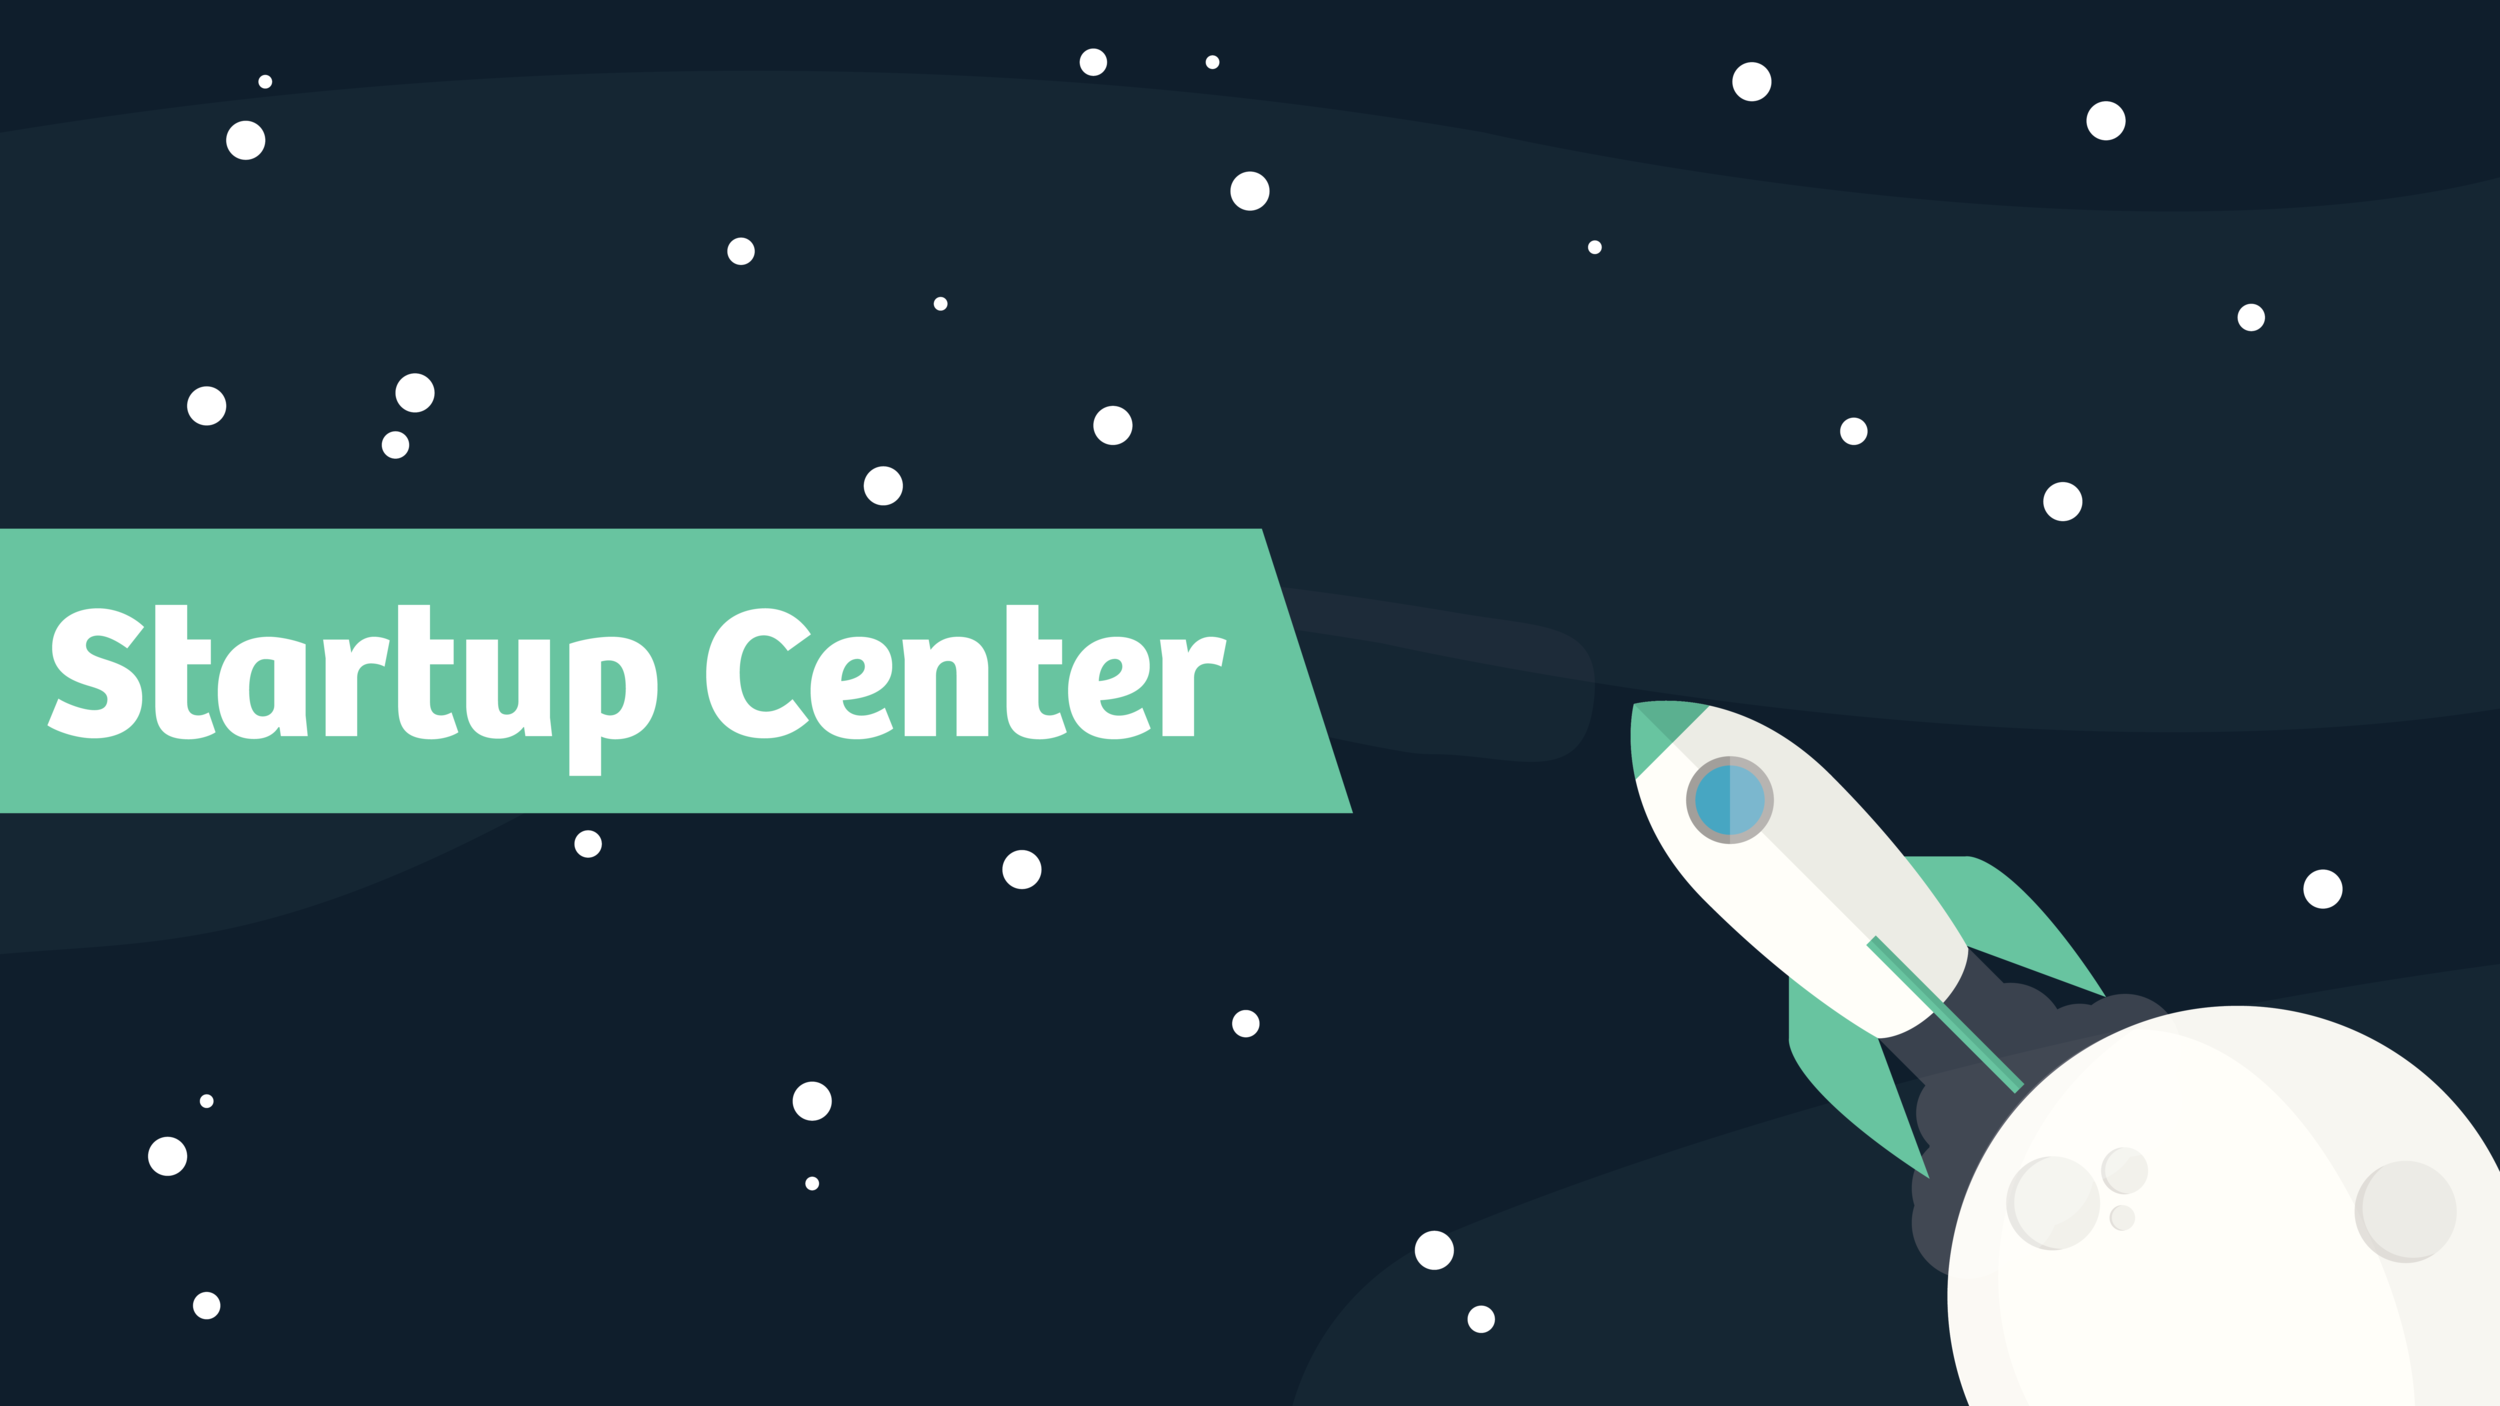 StartupCenter